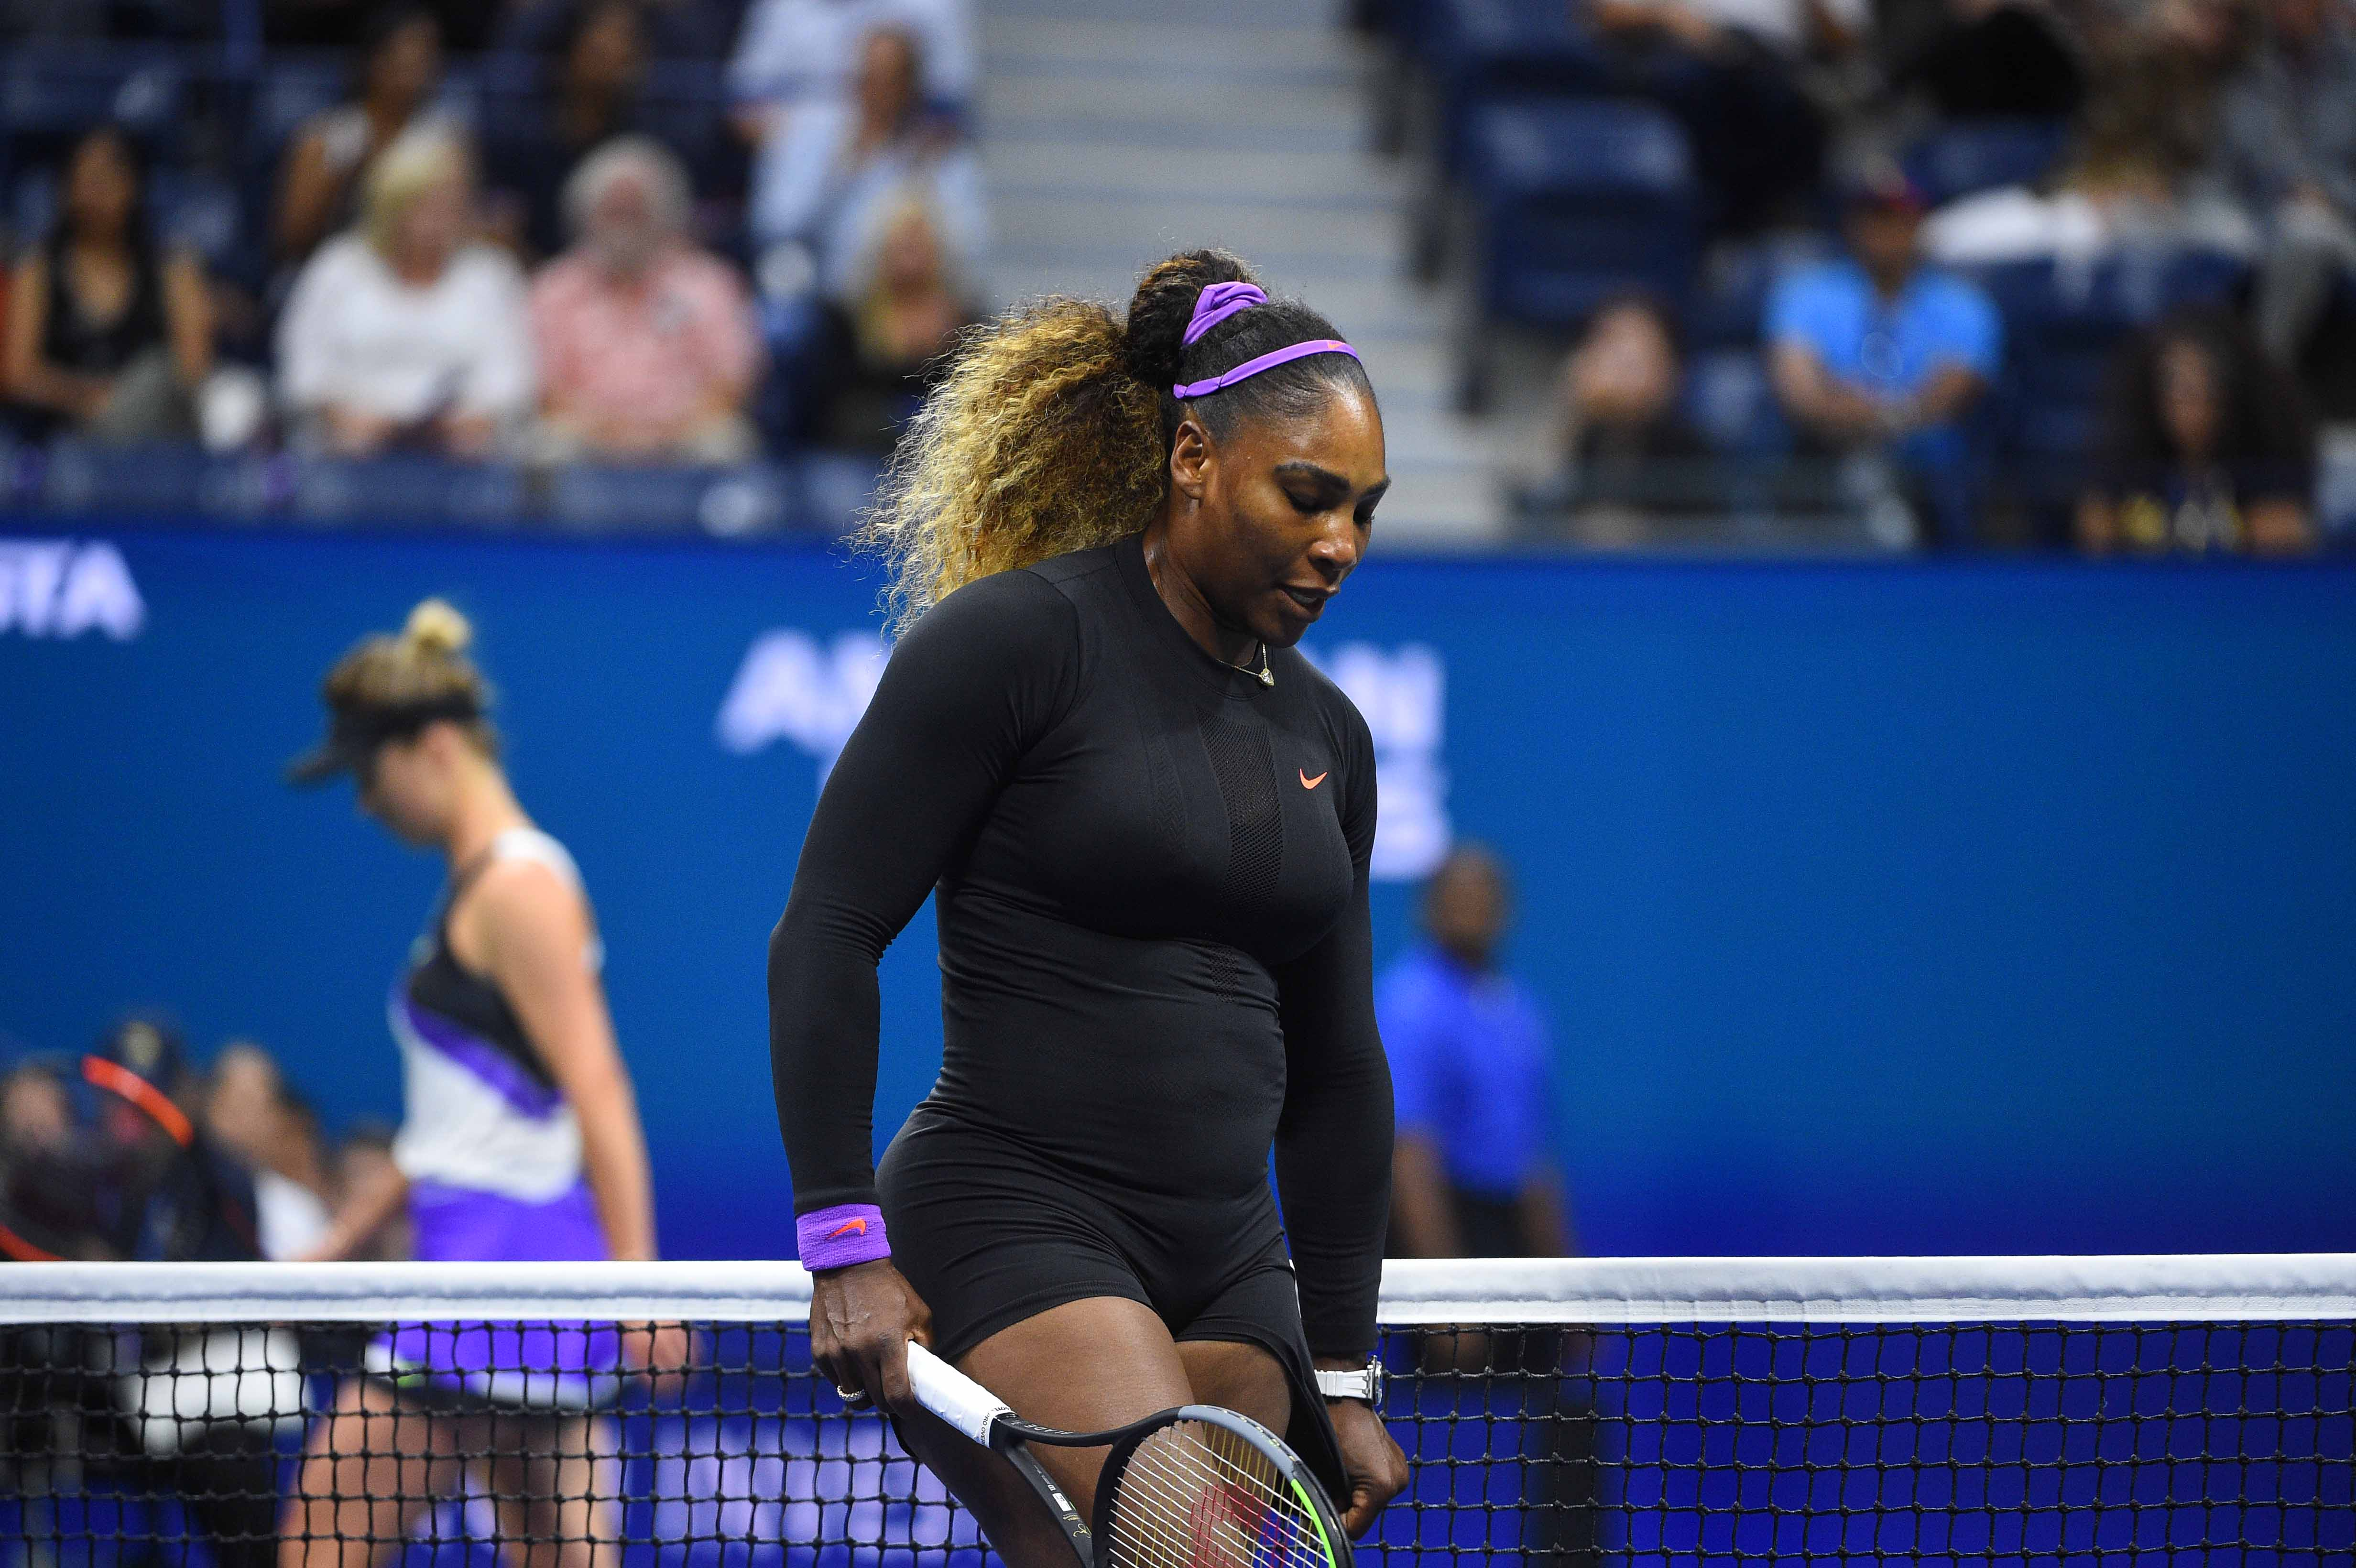 Serena Williams and Elina Svitolina during their semifinal at the 2019 US Open